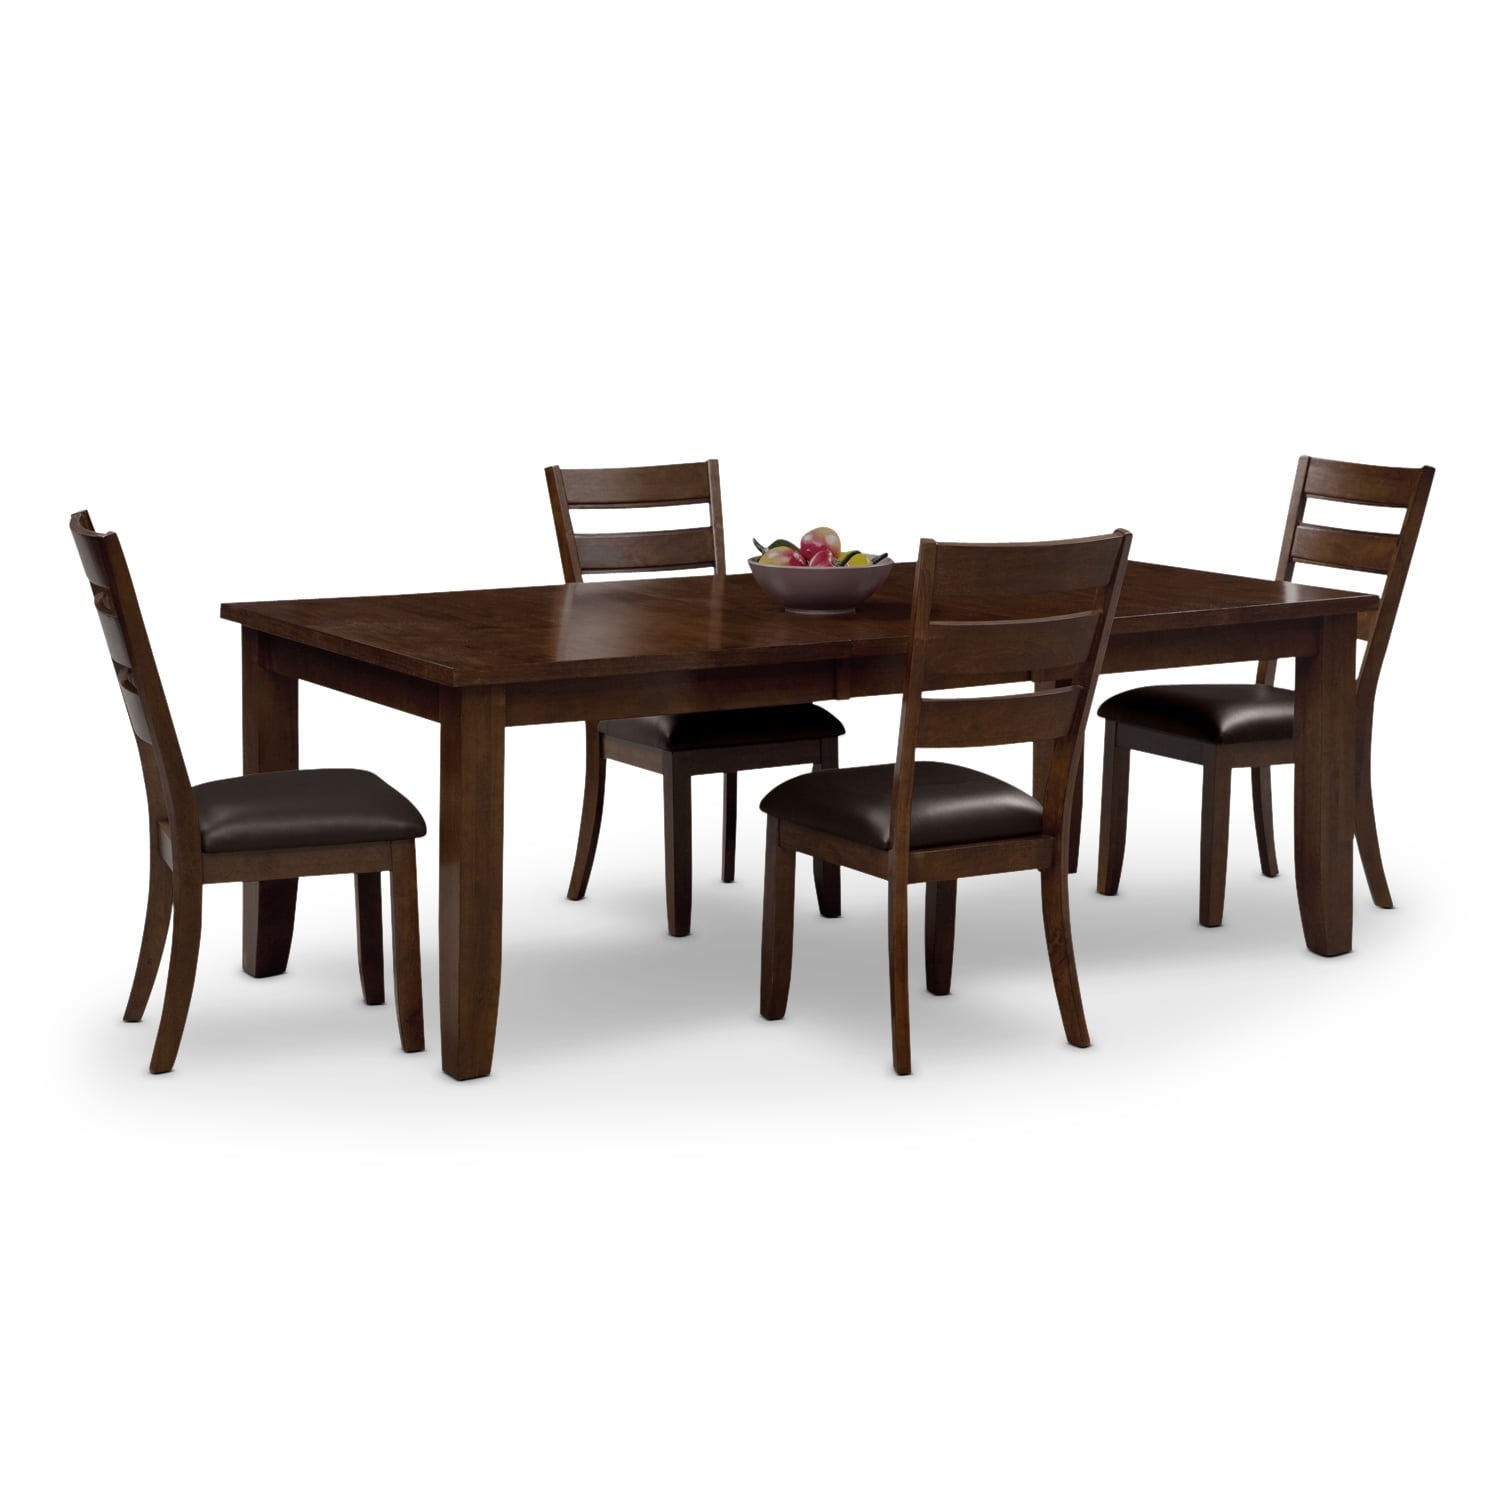 Abaco table and 4 chairs brown american signature for Signature furniture